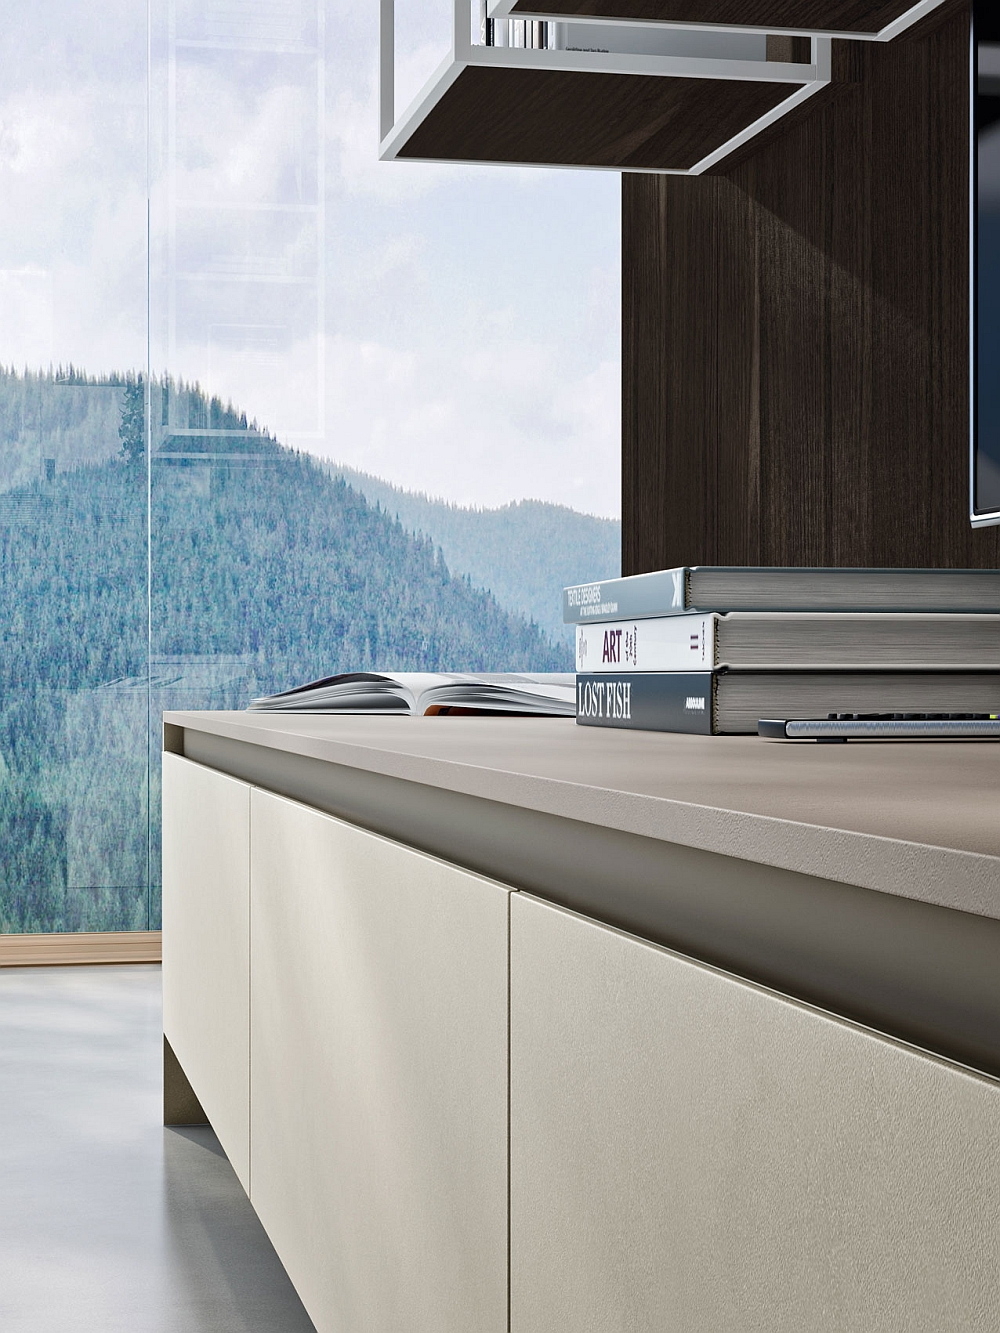 Handle-less finishe of the shelves gives the kitchen a contemporary appeal